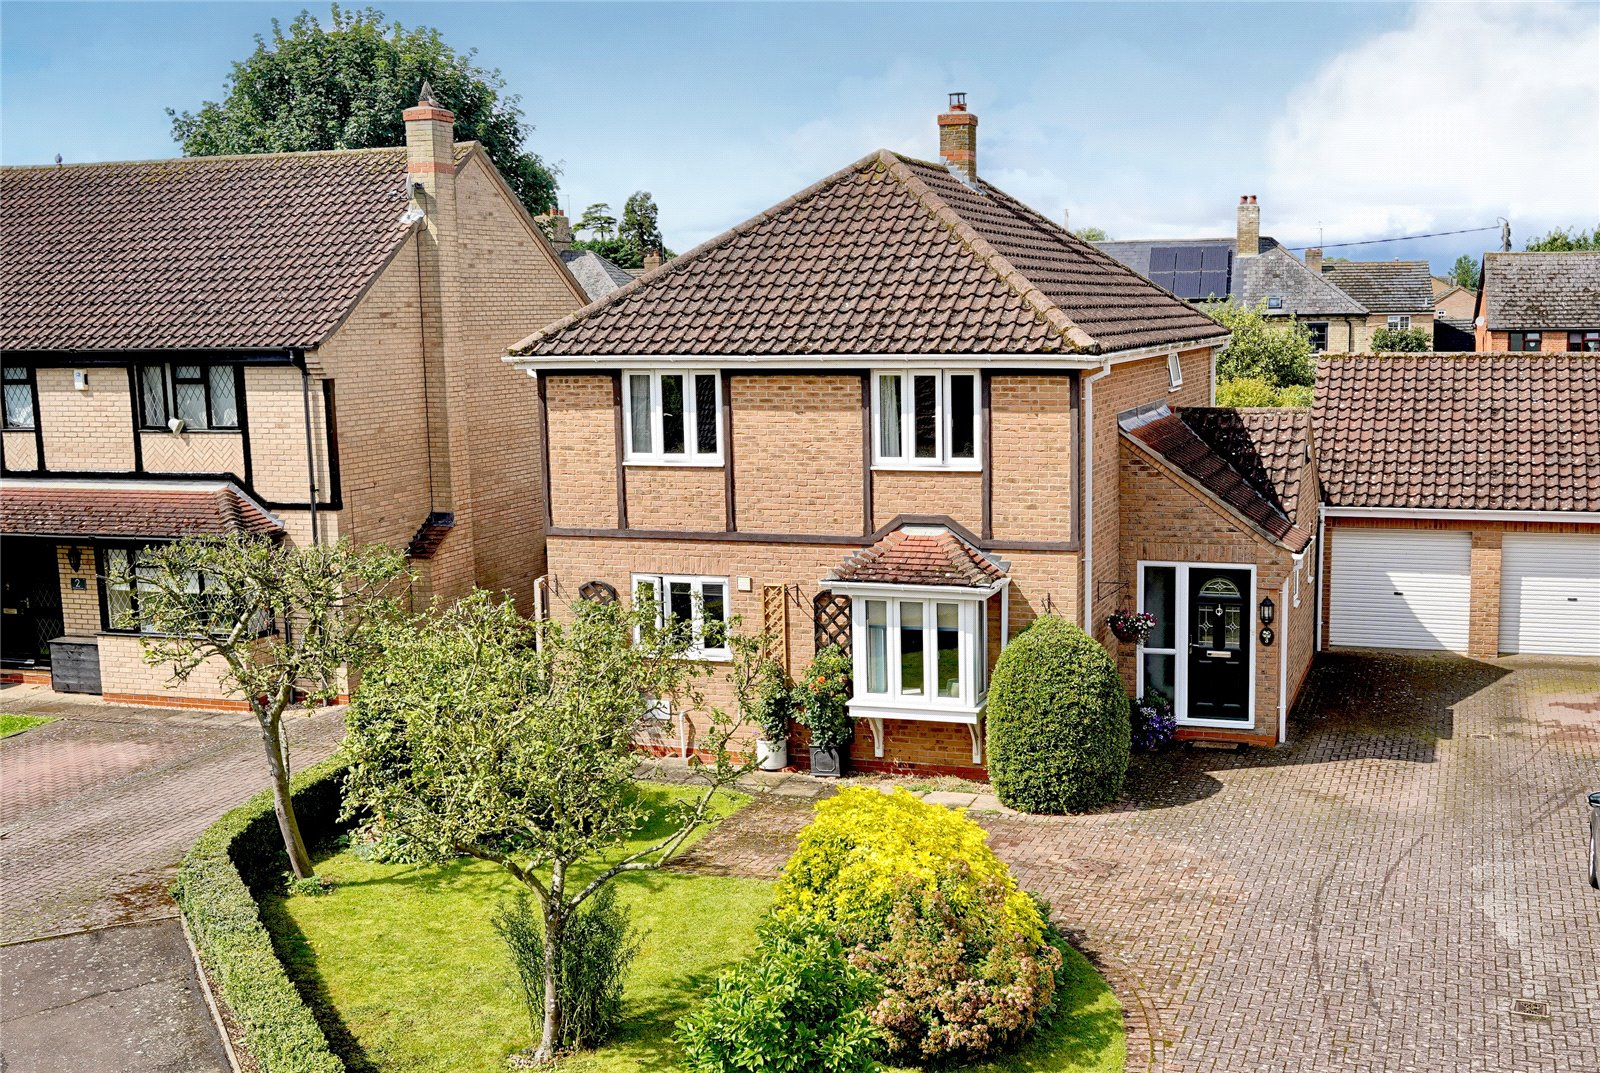 4 bed house for sale in Alsyke Close, Grafham 0